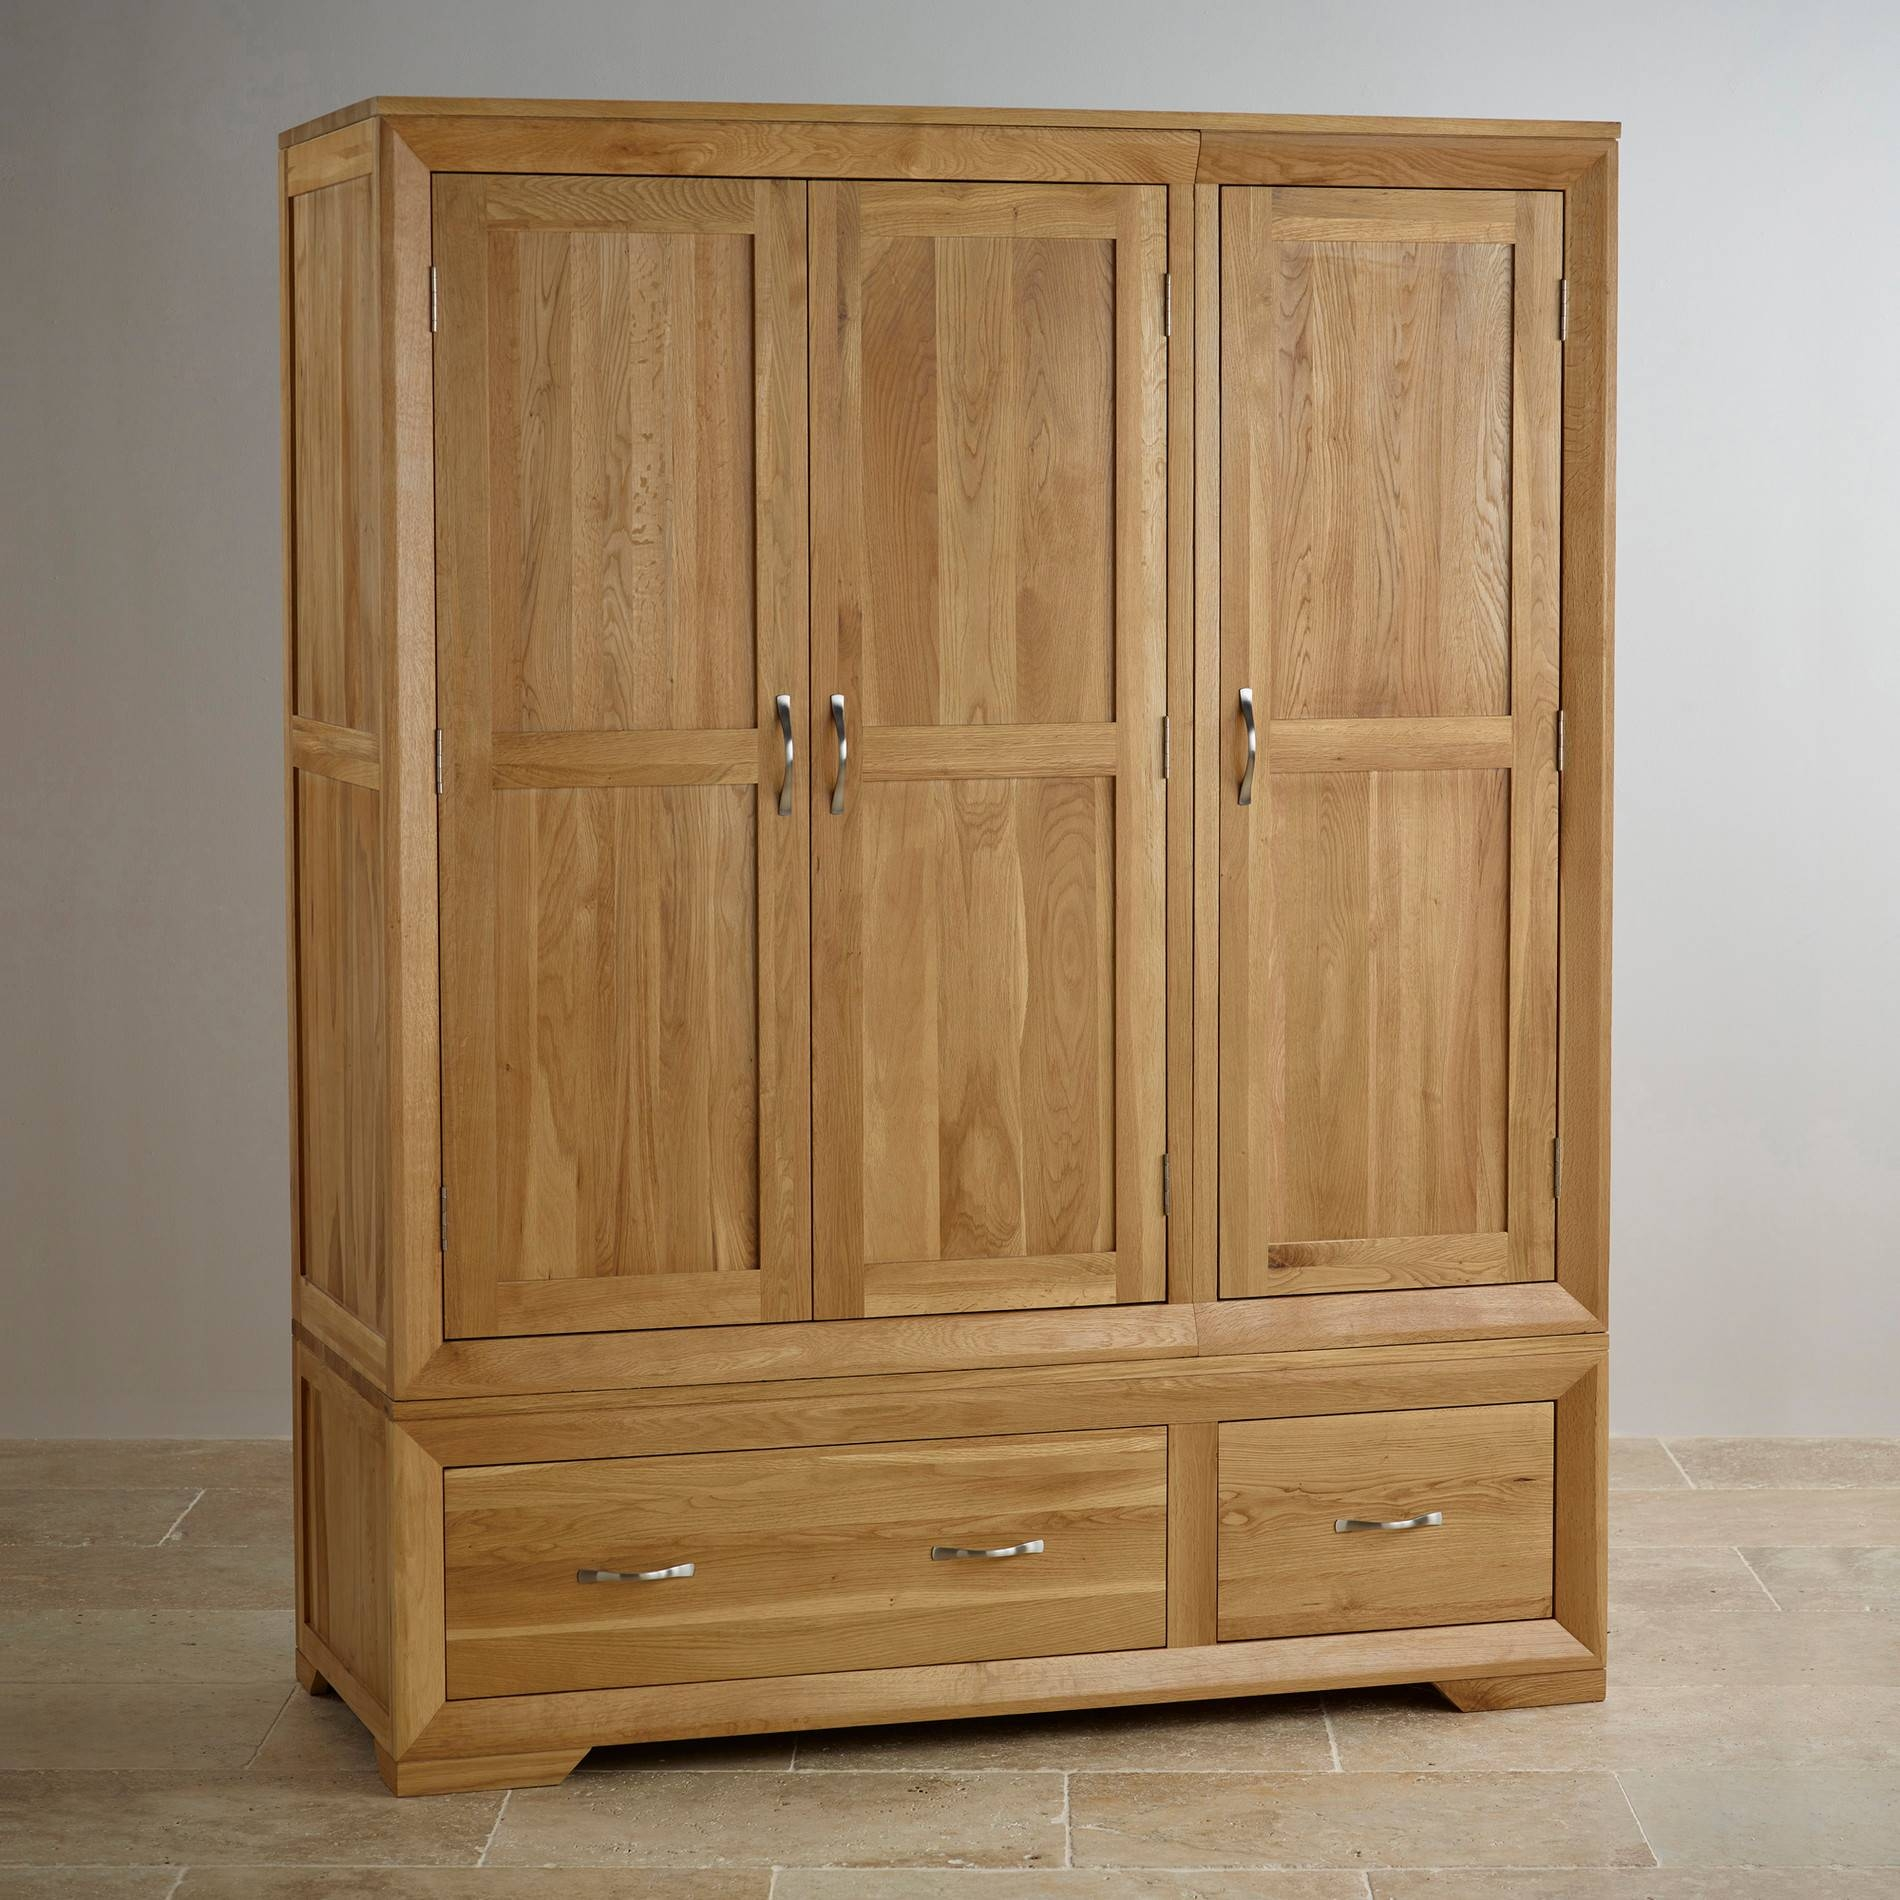 The Bevel Range - Natural Solid Oak Furniture regarding Oak Wardrobes for Sale (Image 12 of 15)